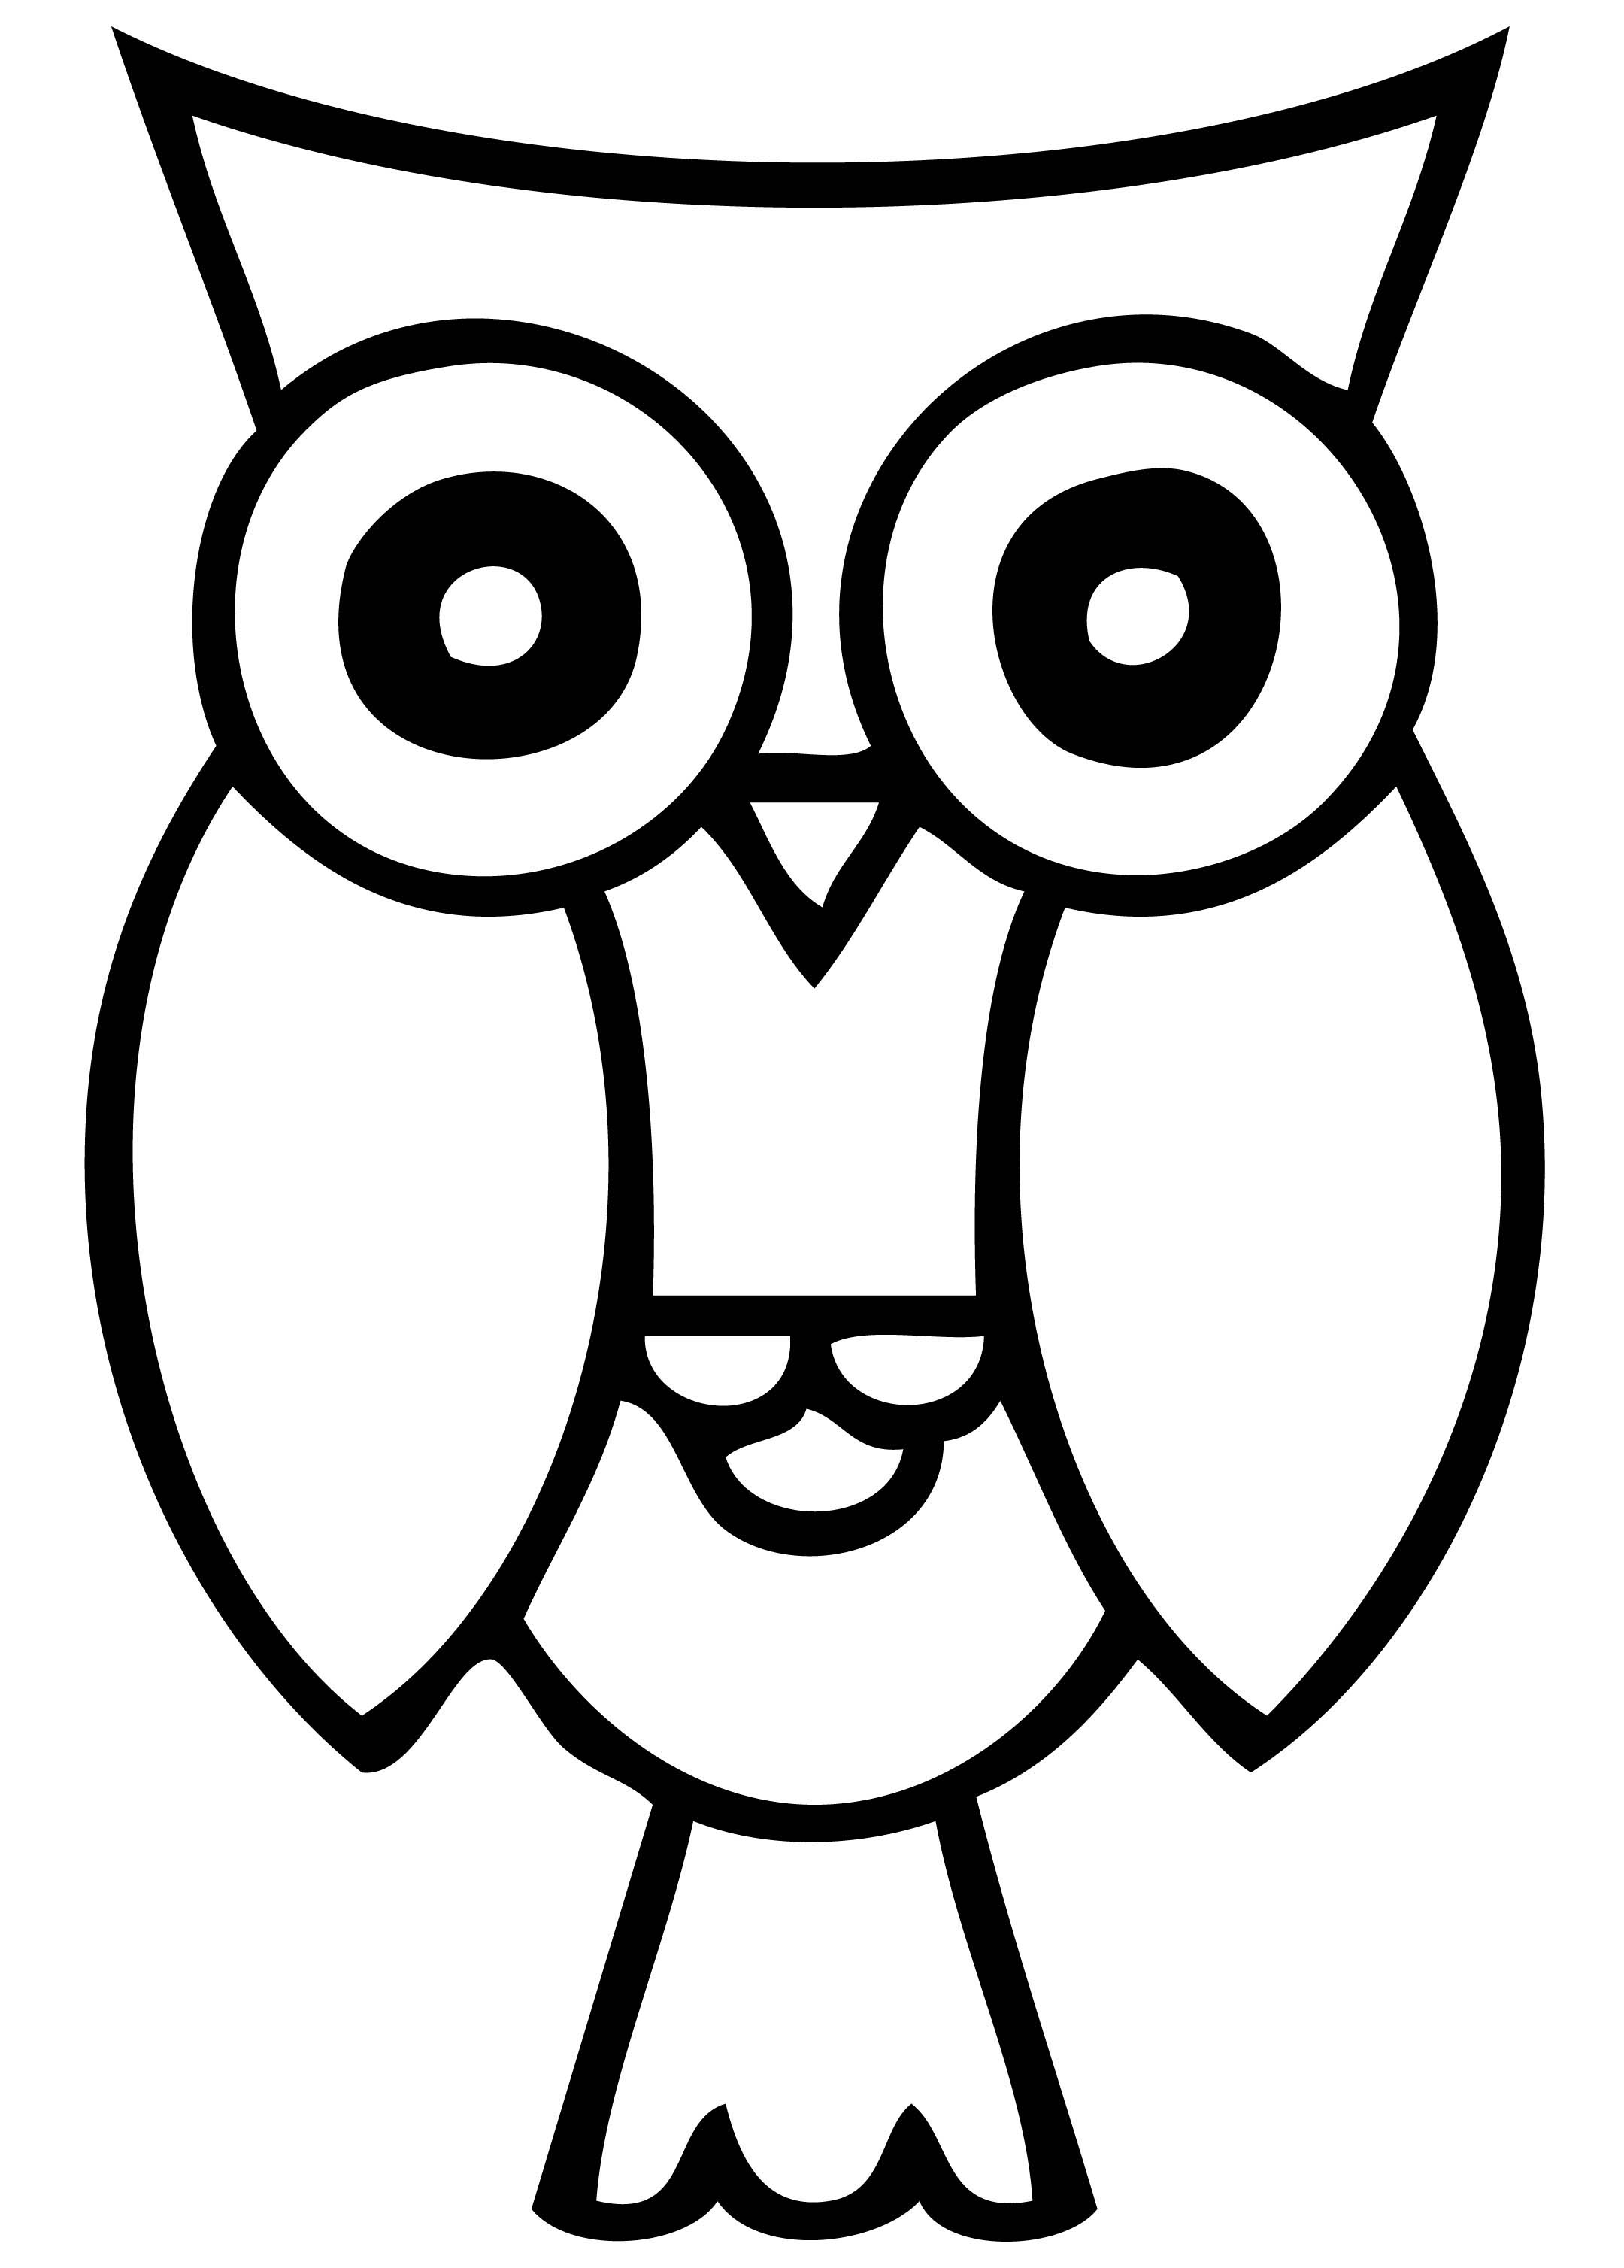 Halloween Owls Clipart   Free download on ClipArtMag